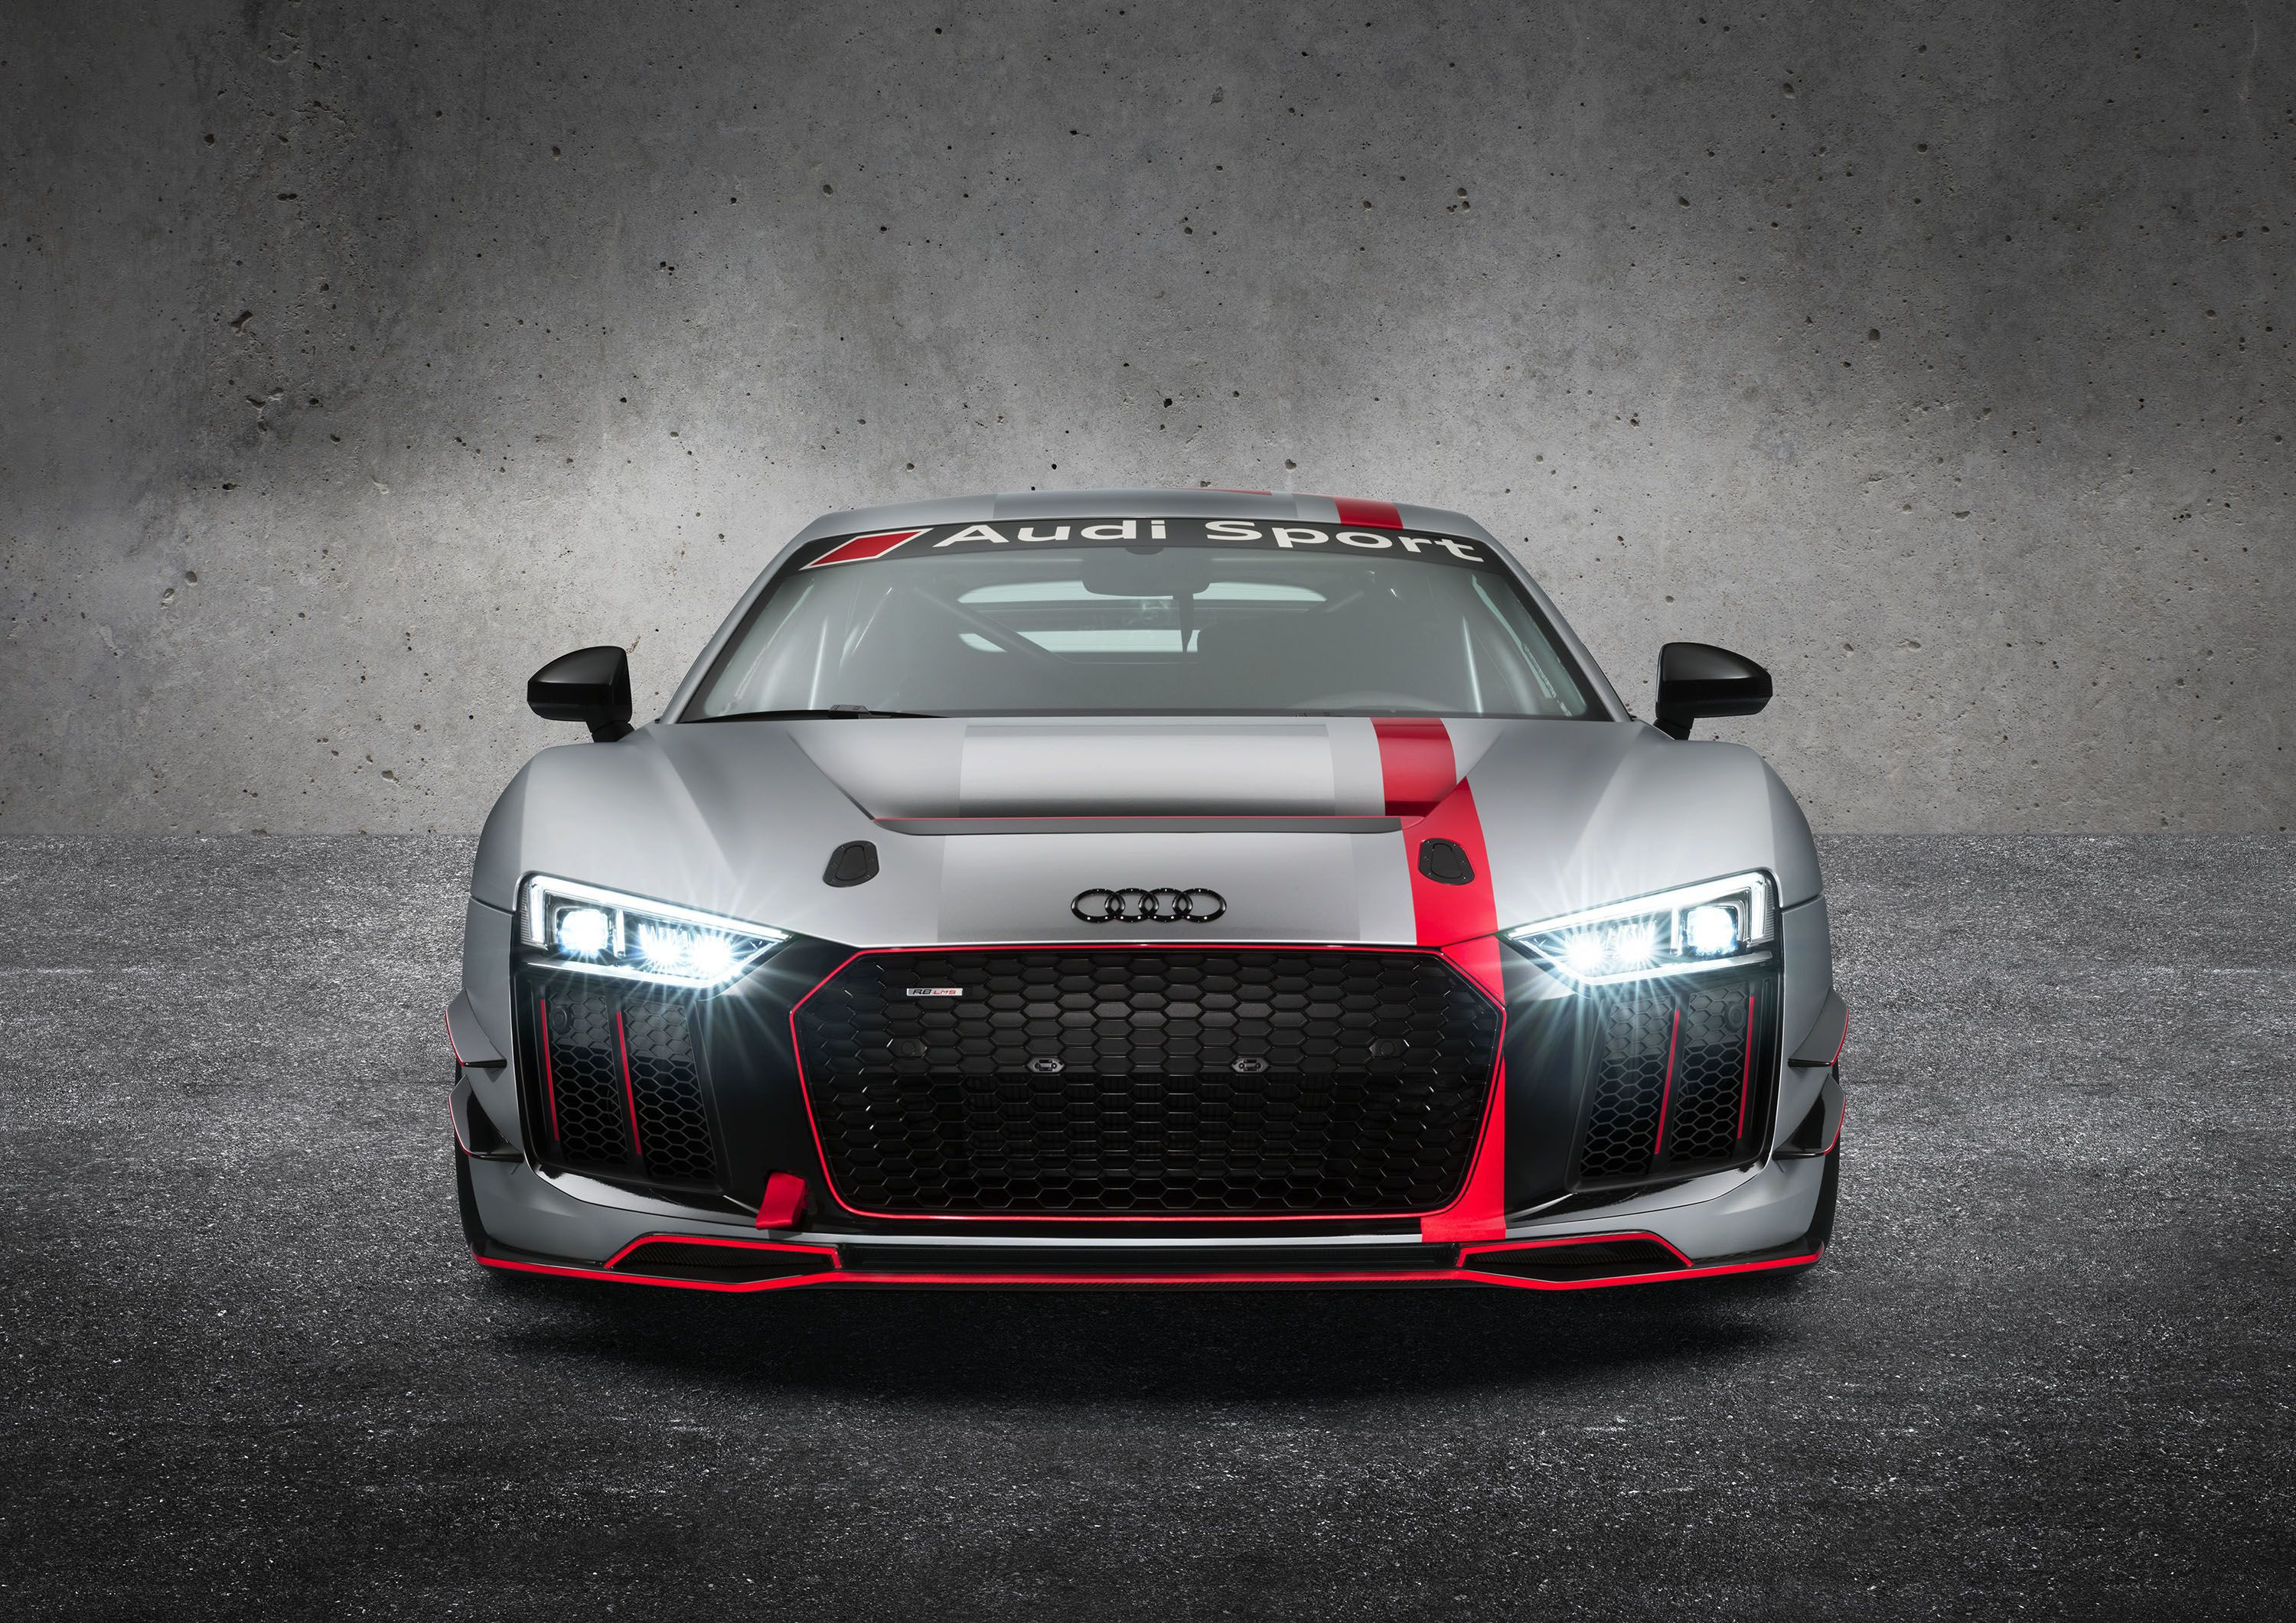 Audi R8 Lms Gt4 Hd Cars 4k Wallpapers Images